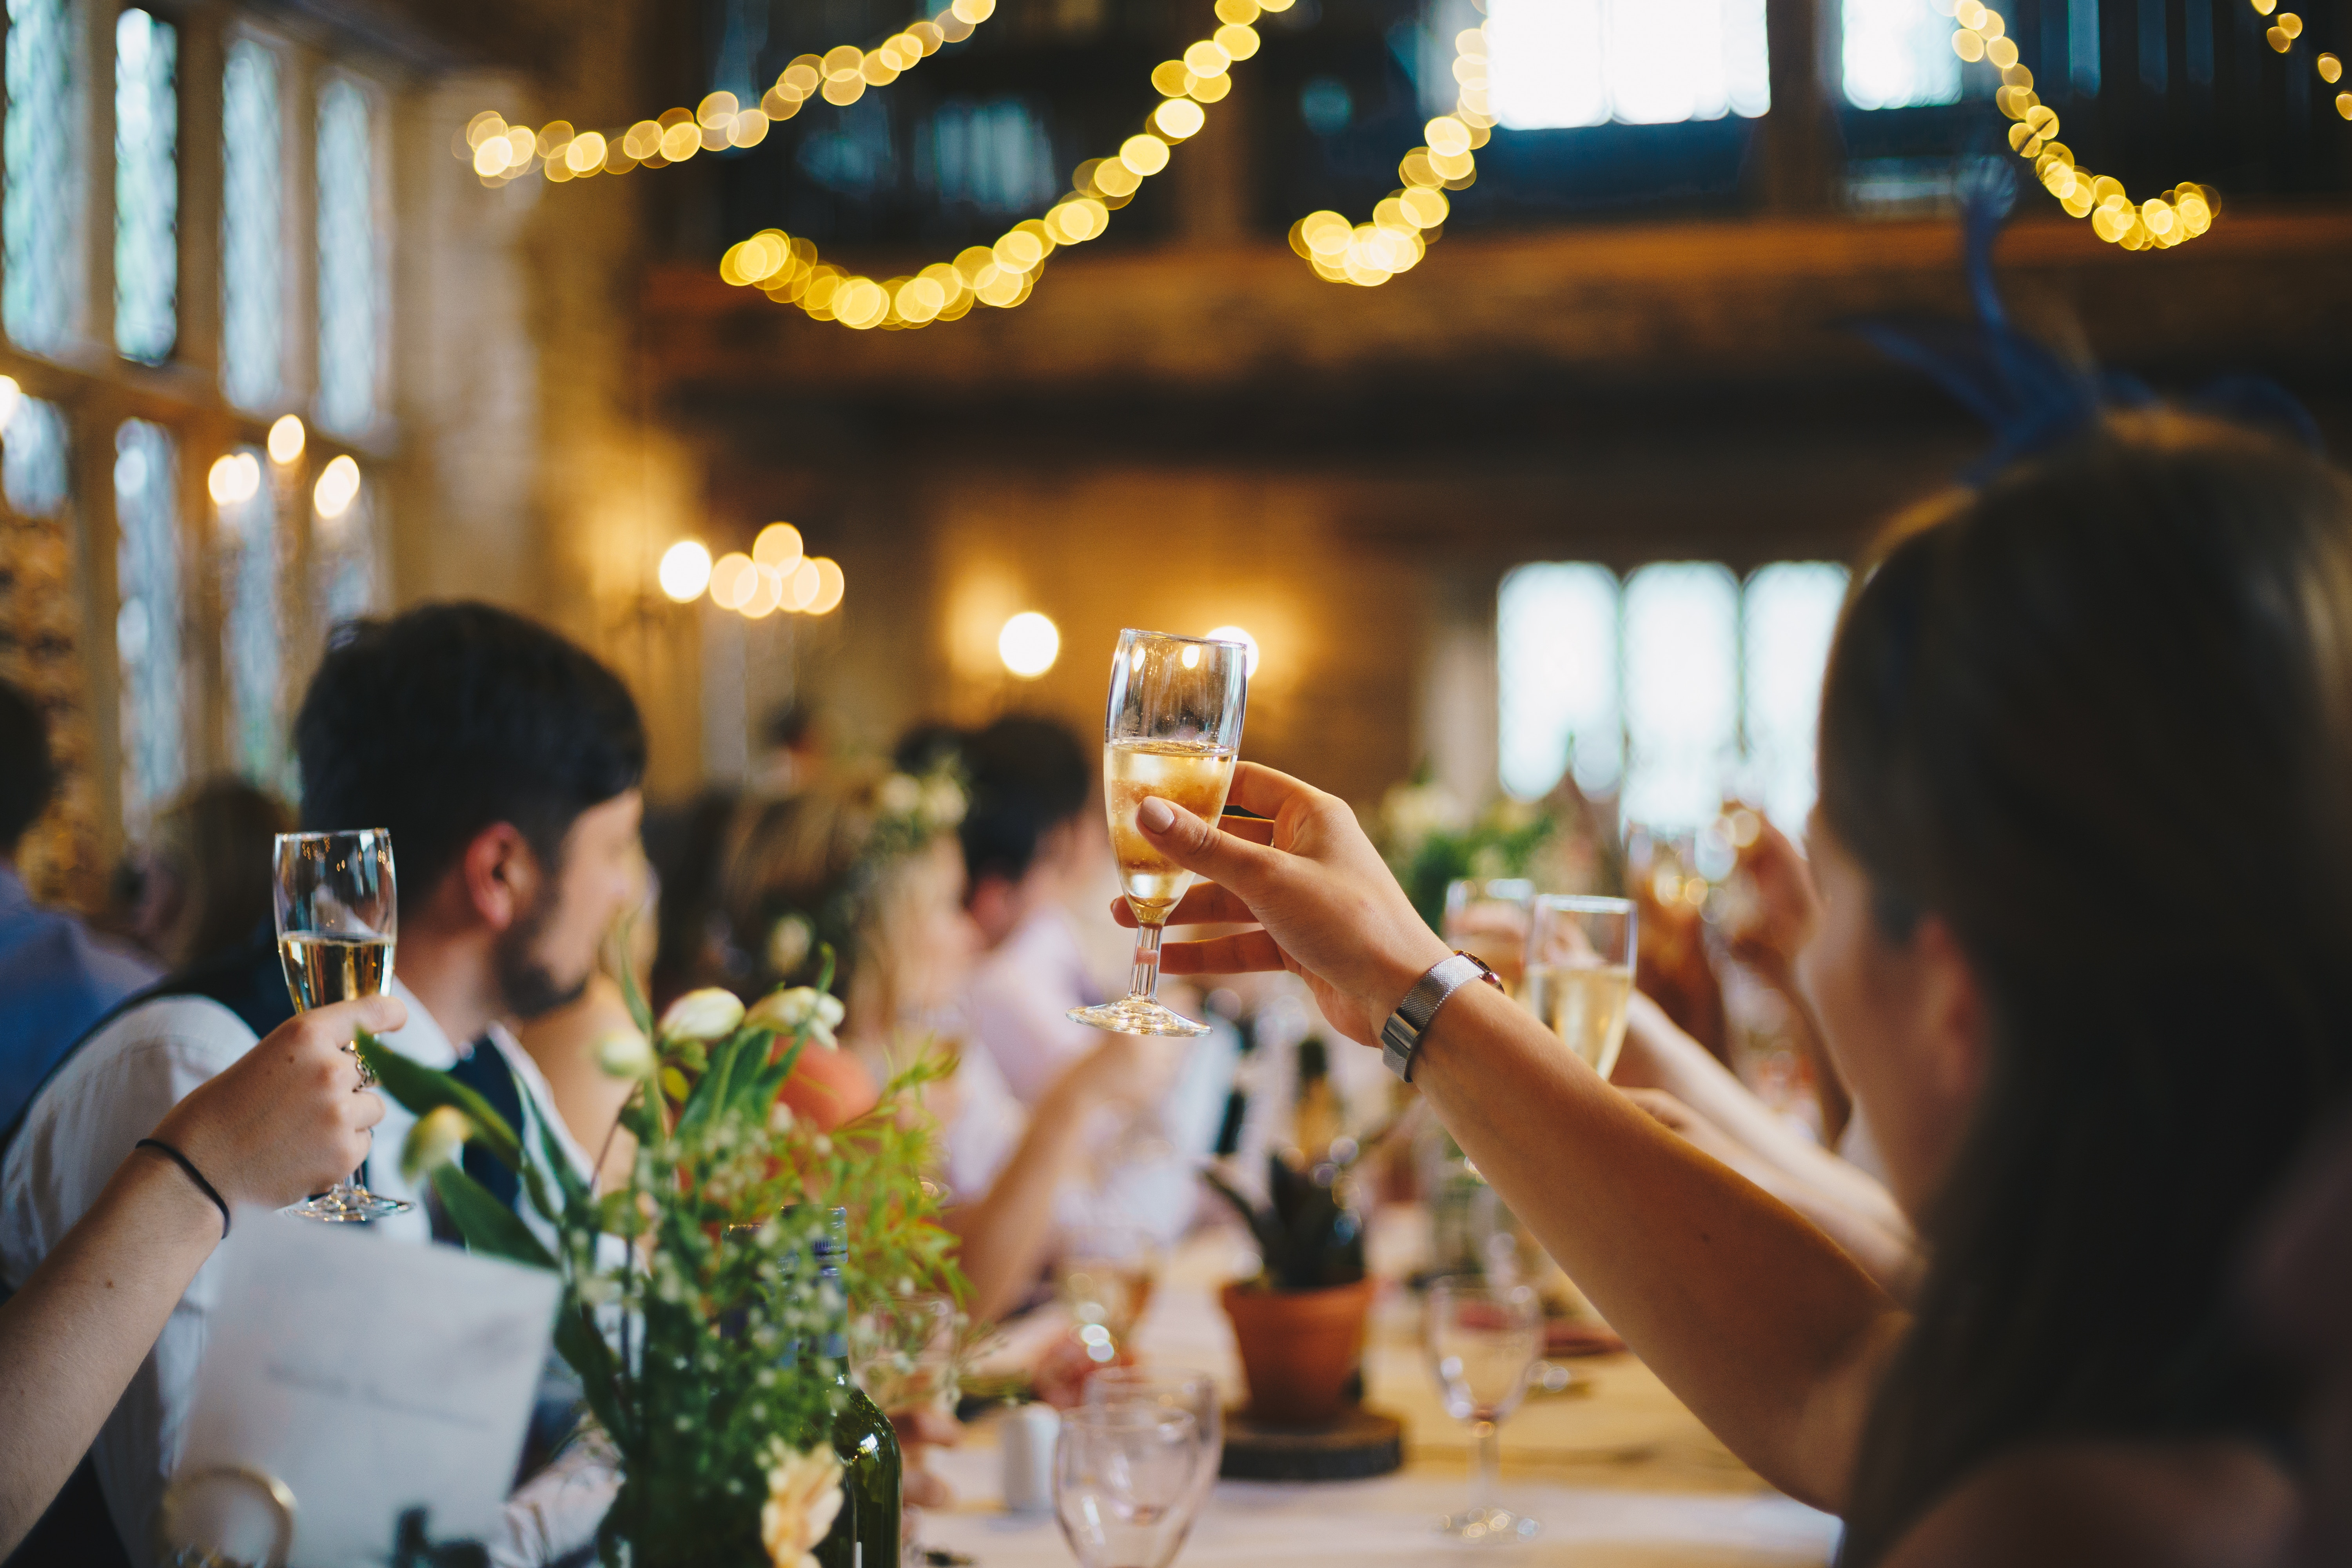 Best Reasons to Book Your Venue Early